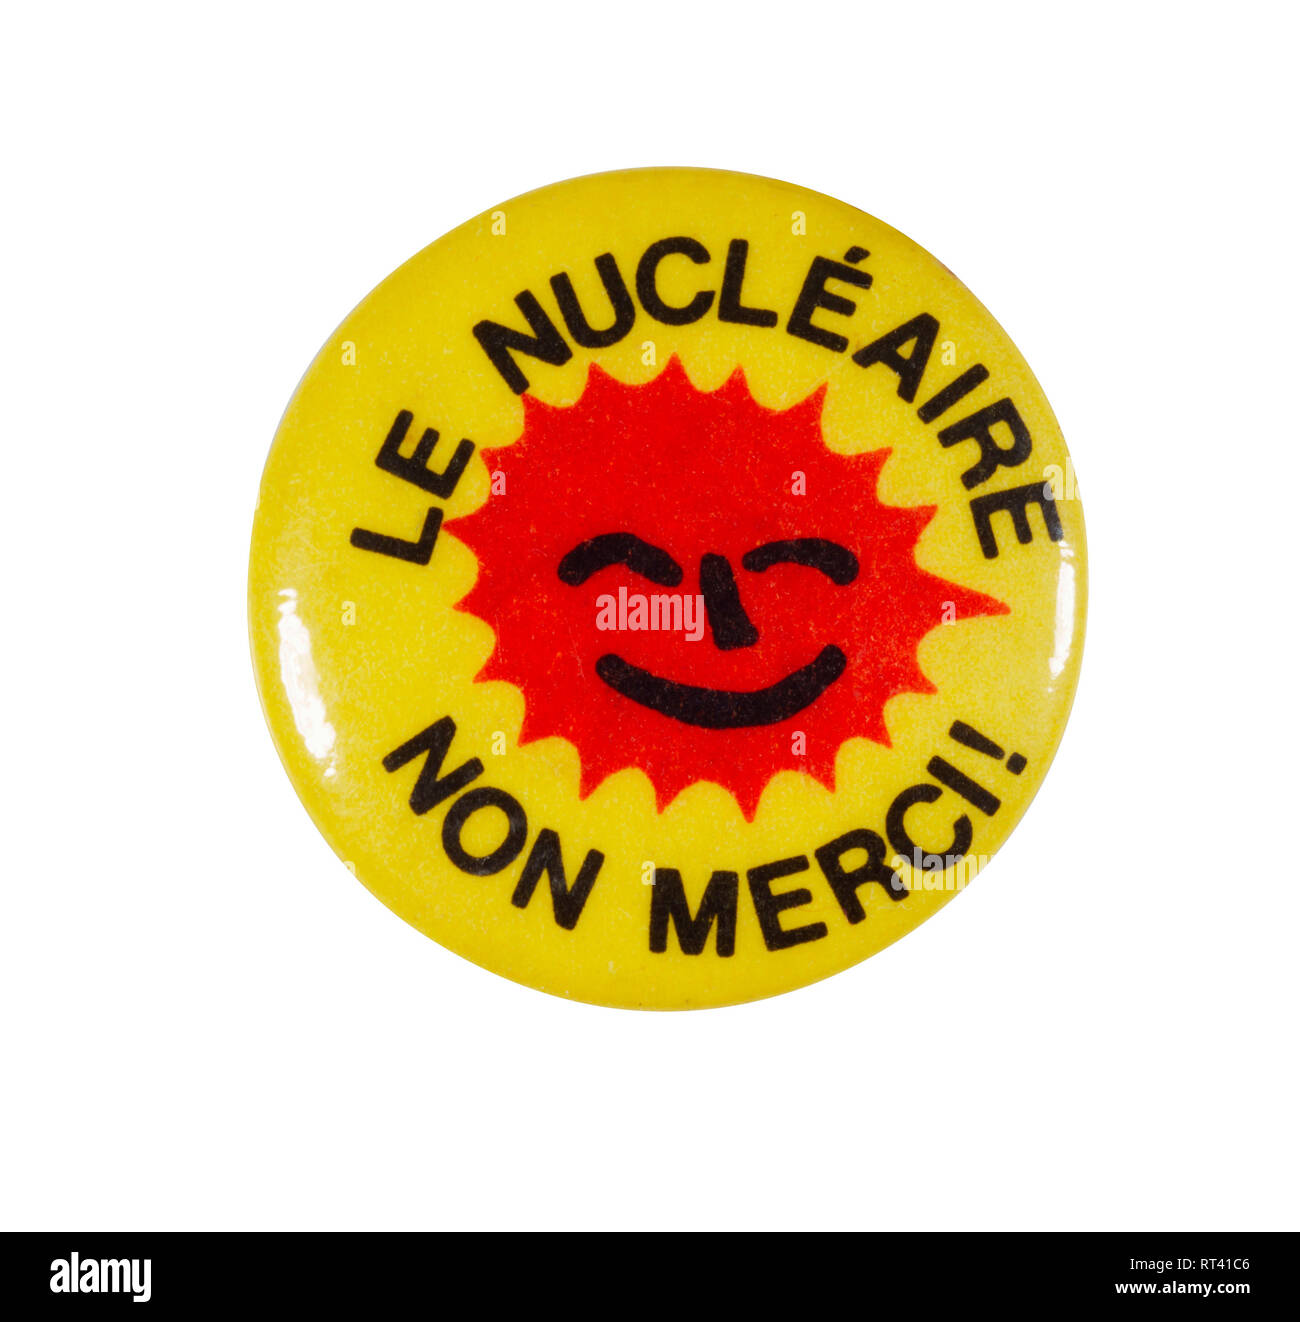 French non nuclear badge from the 1970s. Le Nucléaire non merci! - Stock Image